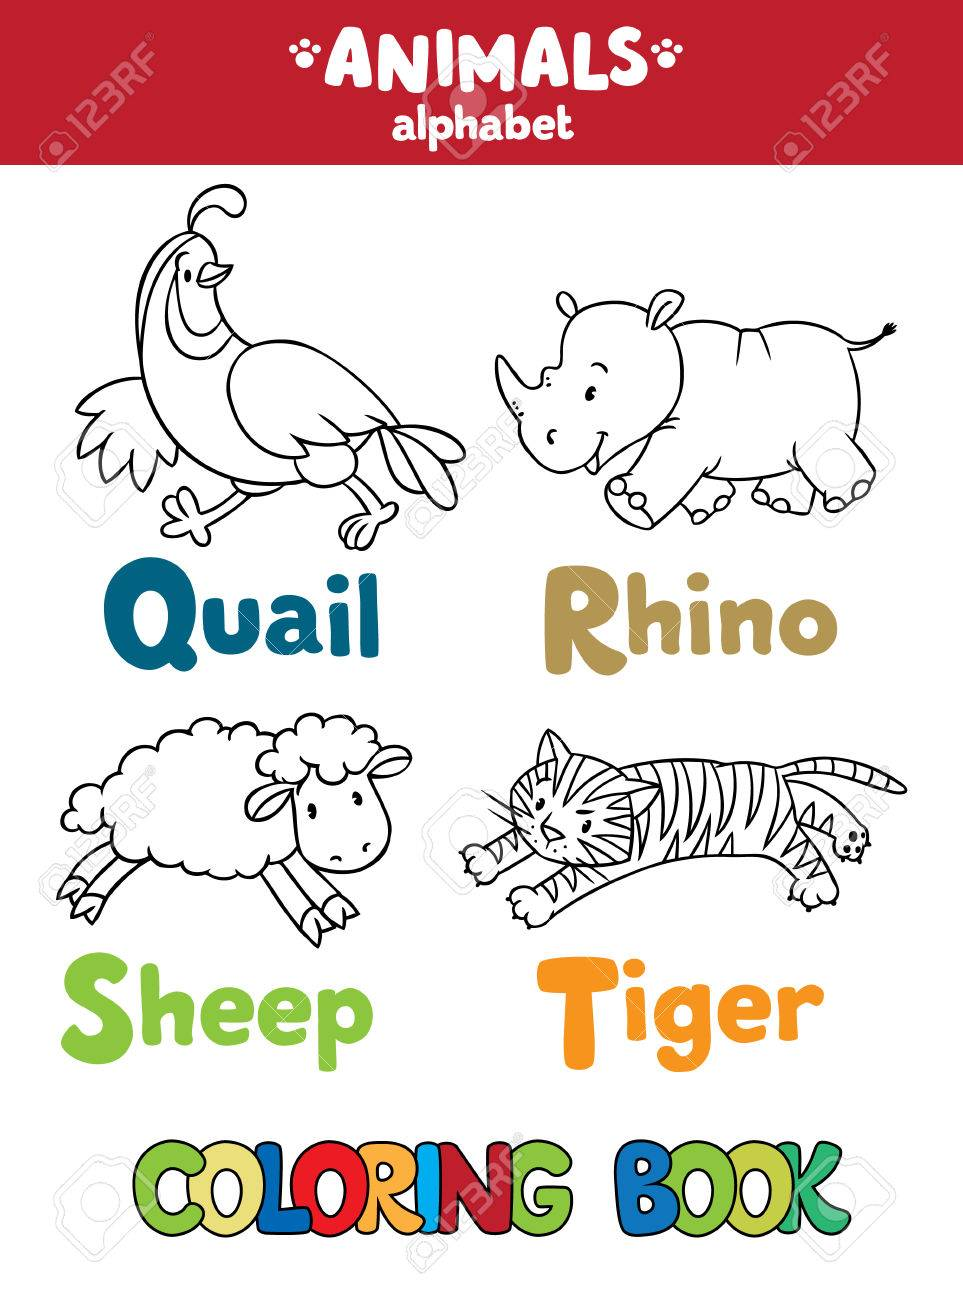 Coloring Book Or Coloring Picture Of Funny Quail Rhino Sheep